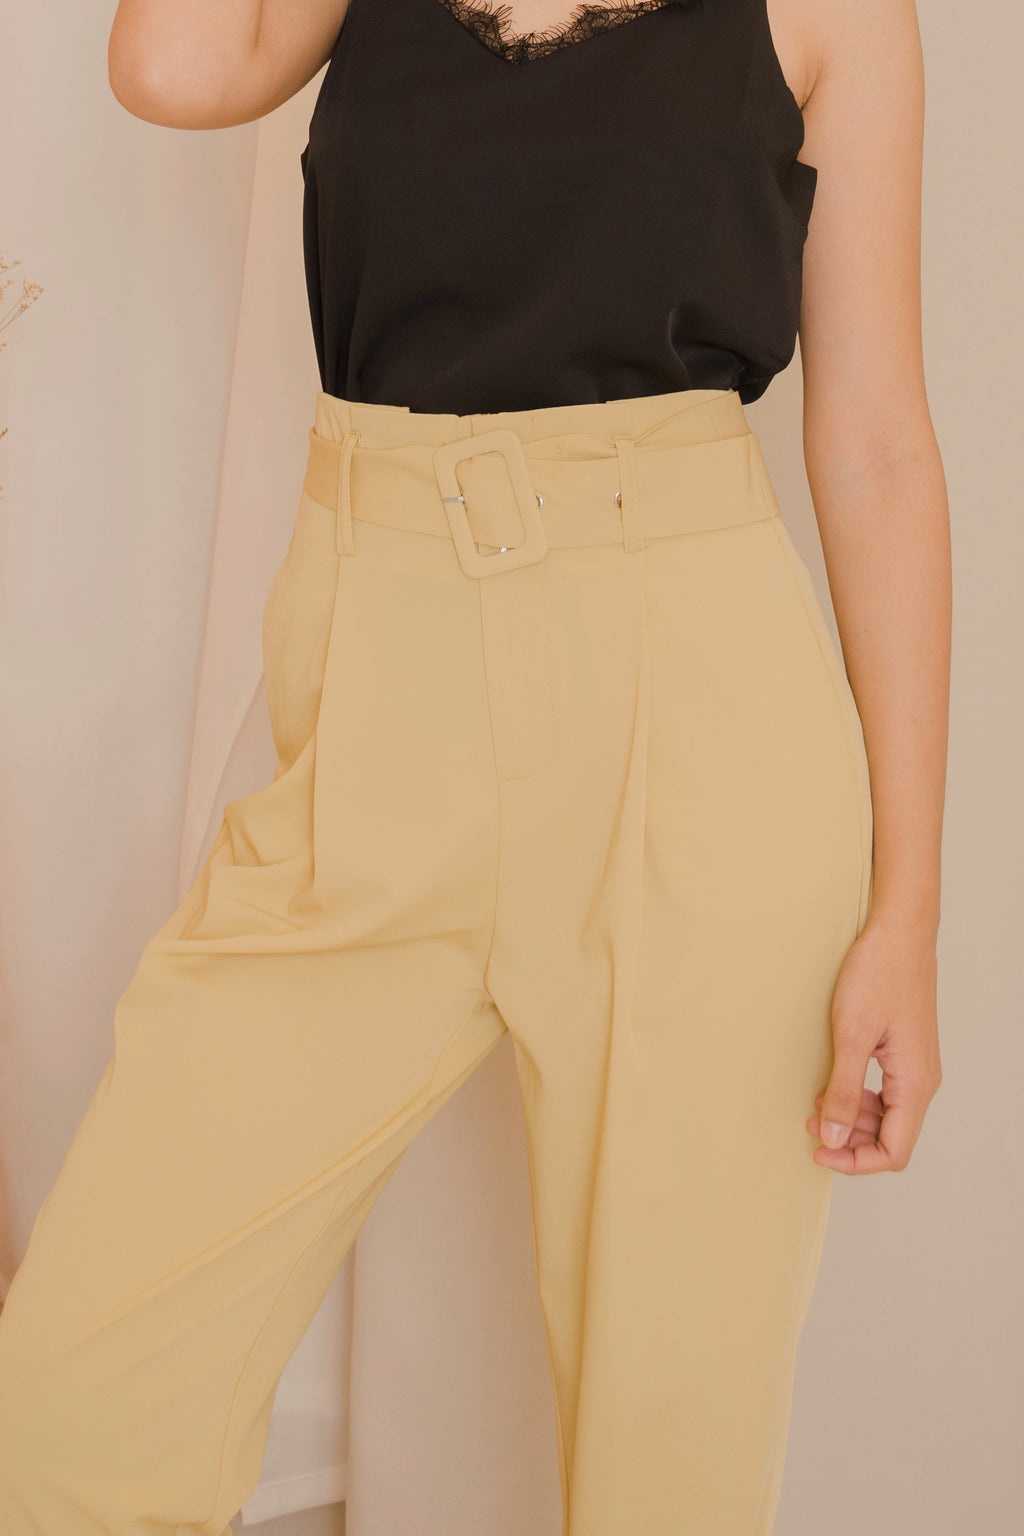 CHARIS Belted Pants